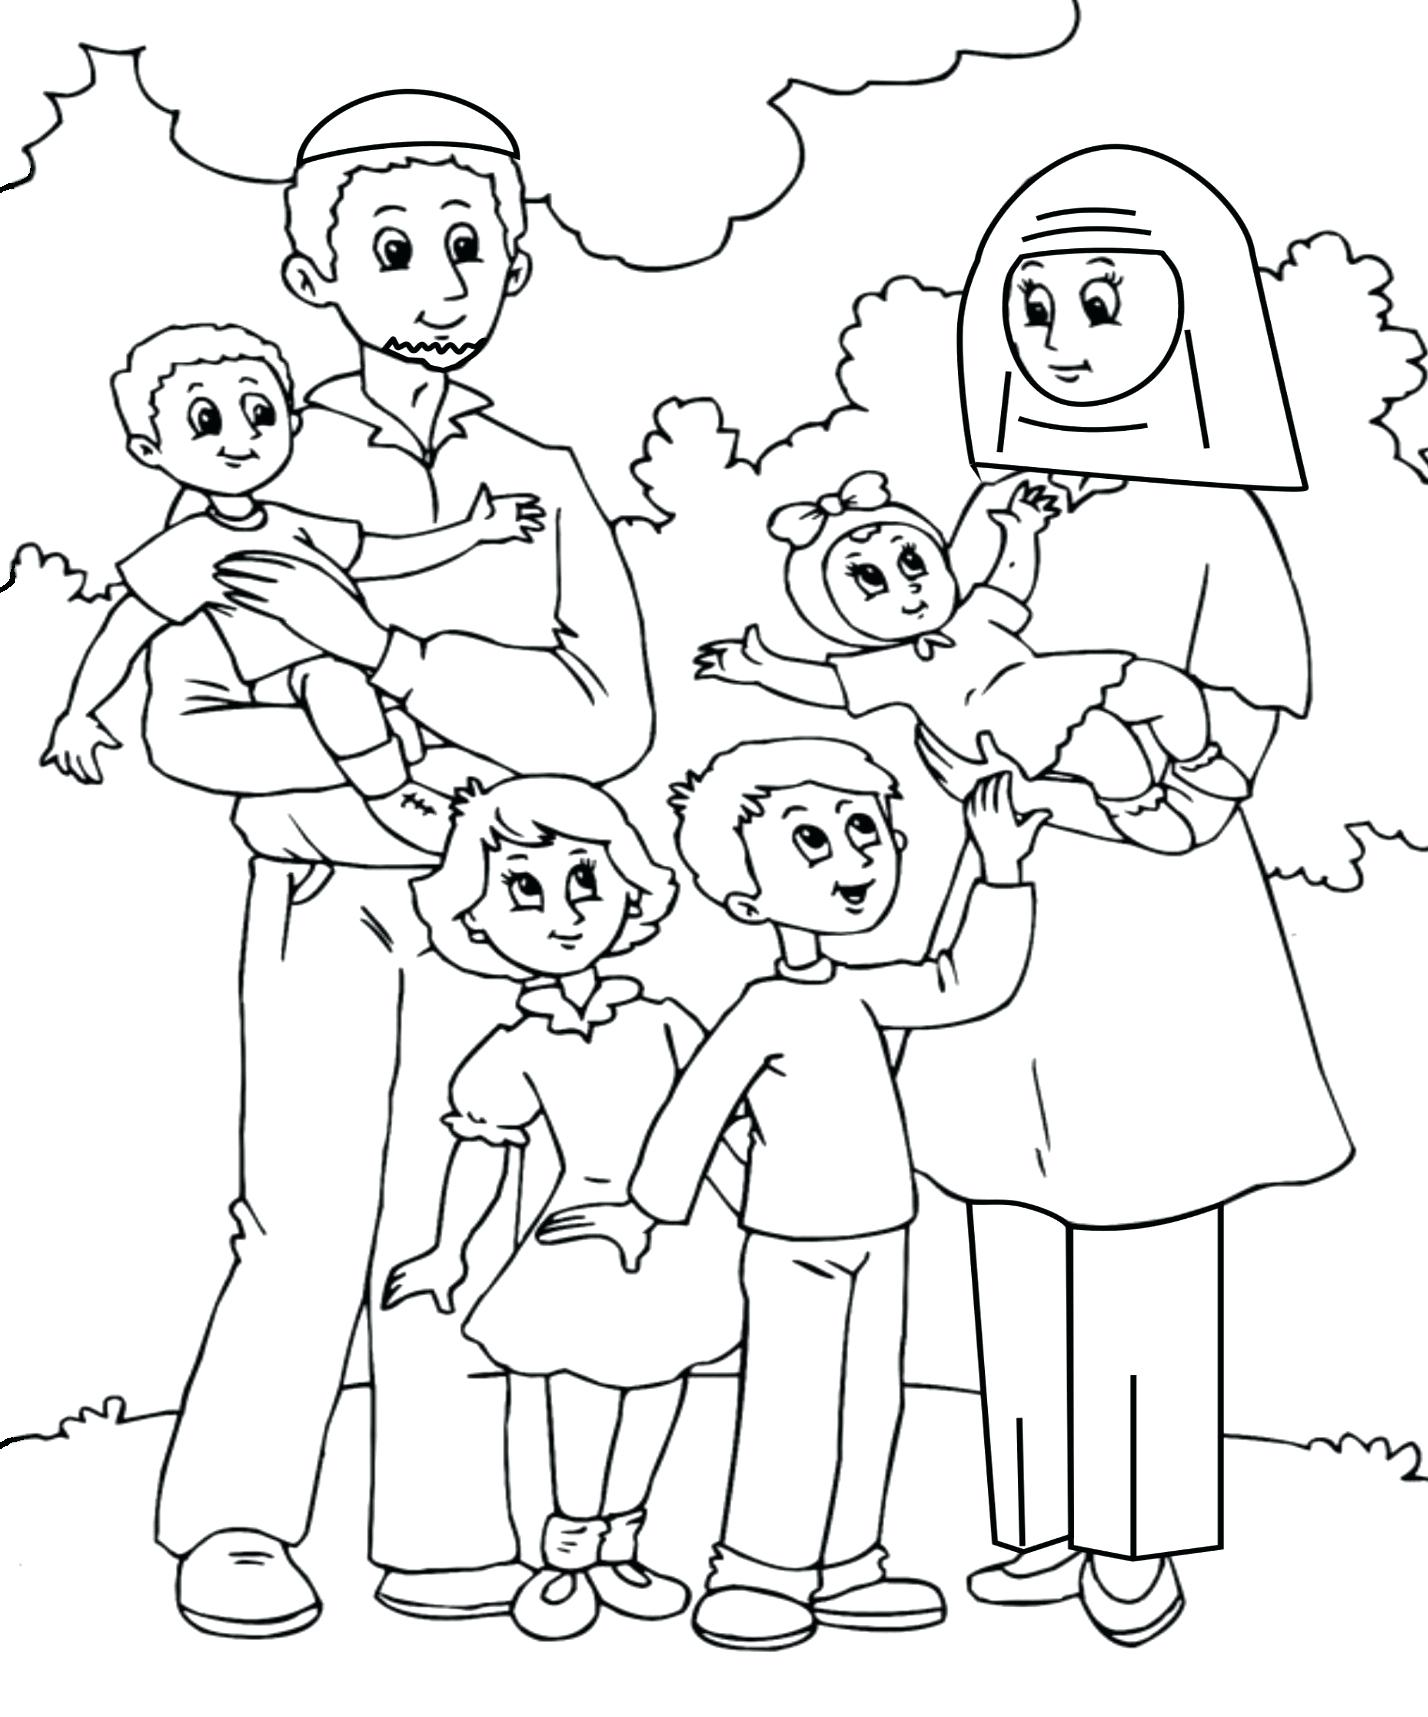 Family Members Coloring Pages At Getcolorings